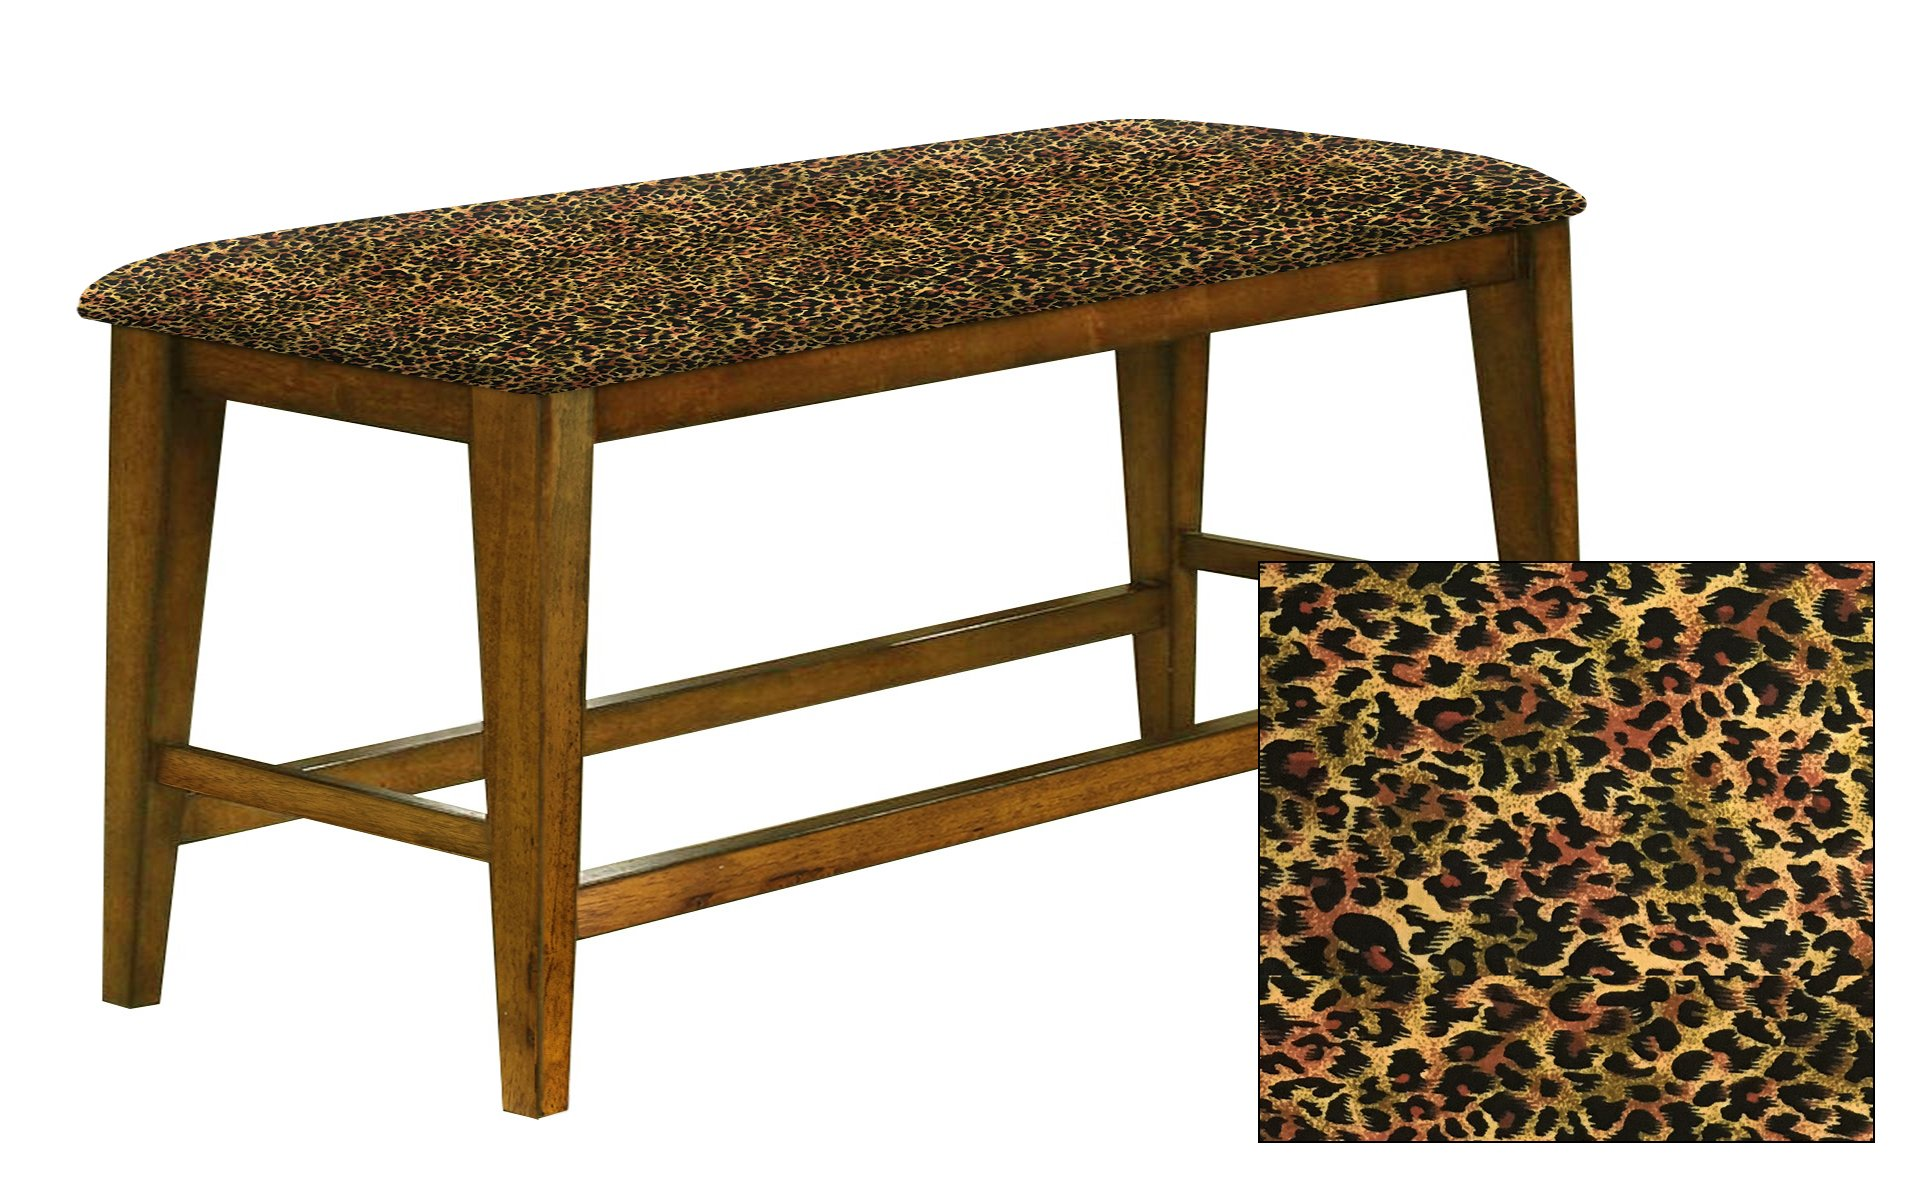 """Counter Height 25"""" Tall Universal Bench in an Oak Finish Featuring a Padded Seat Cushion With Your Choice of an Animal Print Fabric Covered Seat Cushion (Cheetah Small Cotton)"""